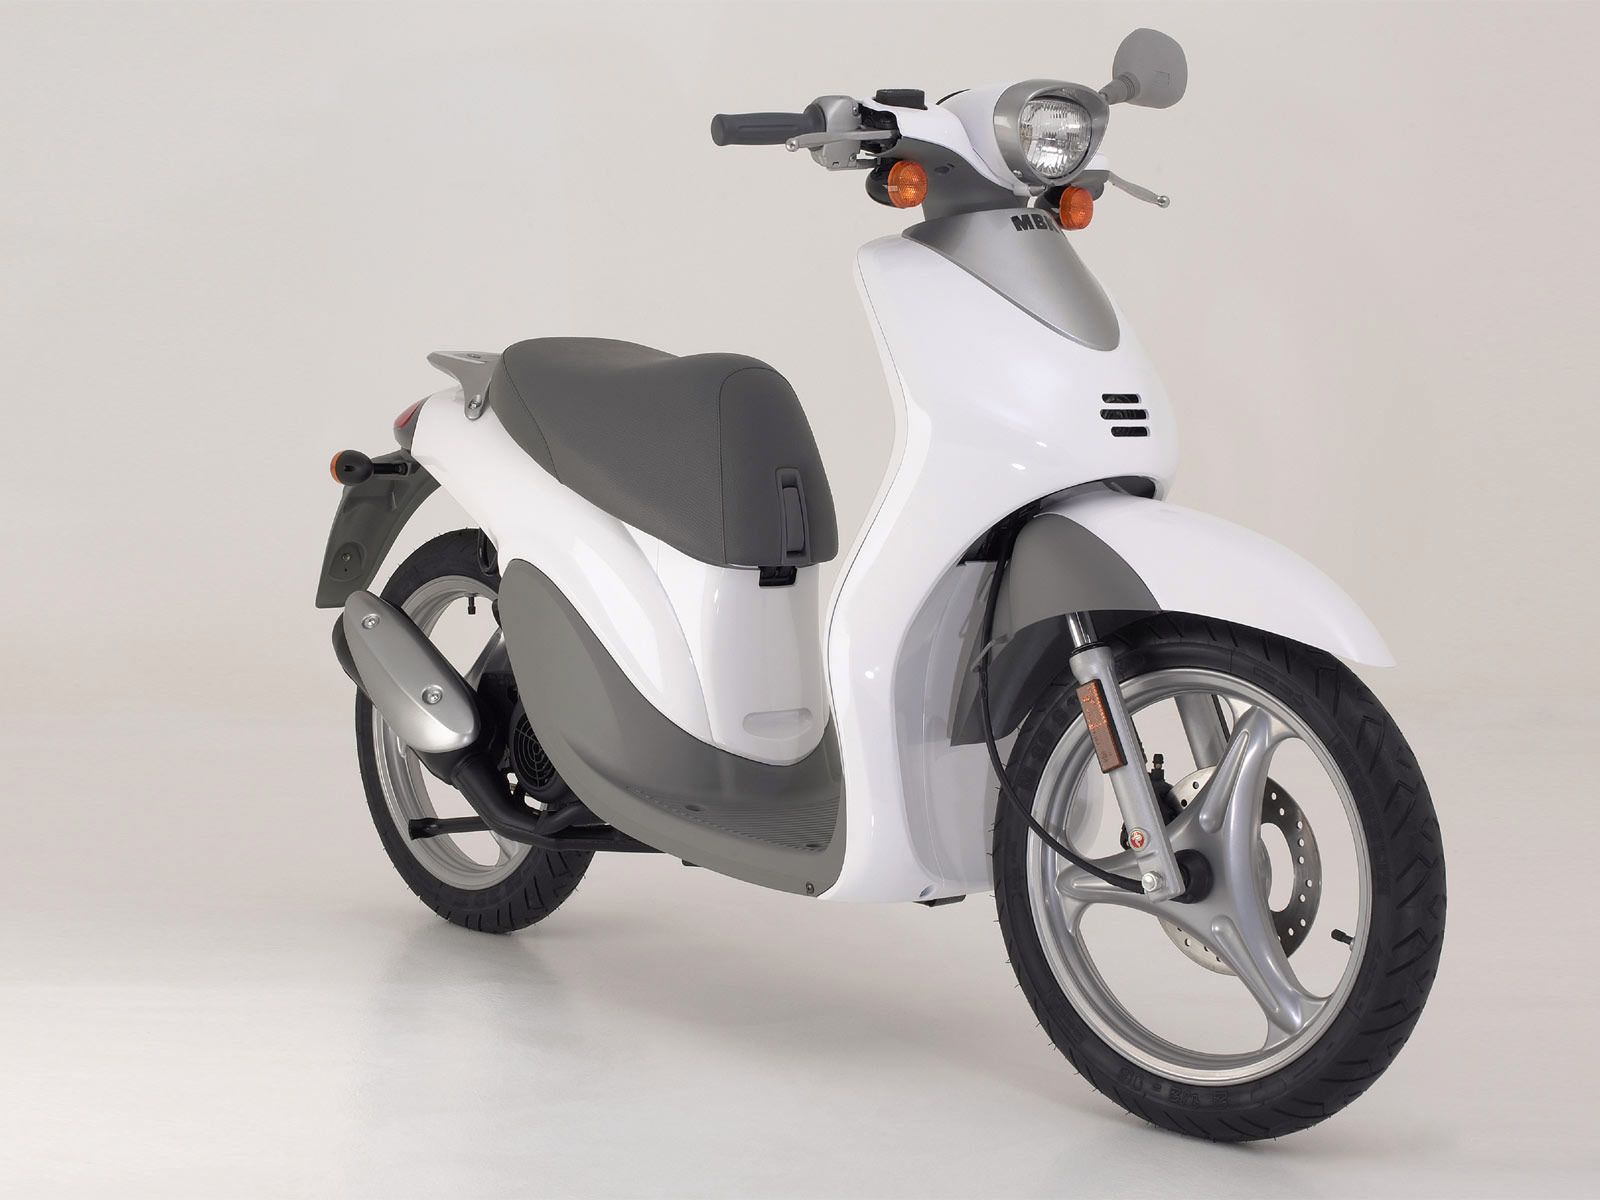 2007 mbk flipper light scooter pictures accident lawyers info. Black Bedroom Furniture Sets. Home Design Ideas